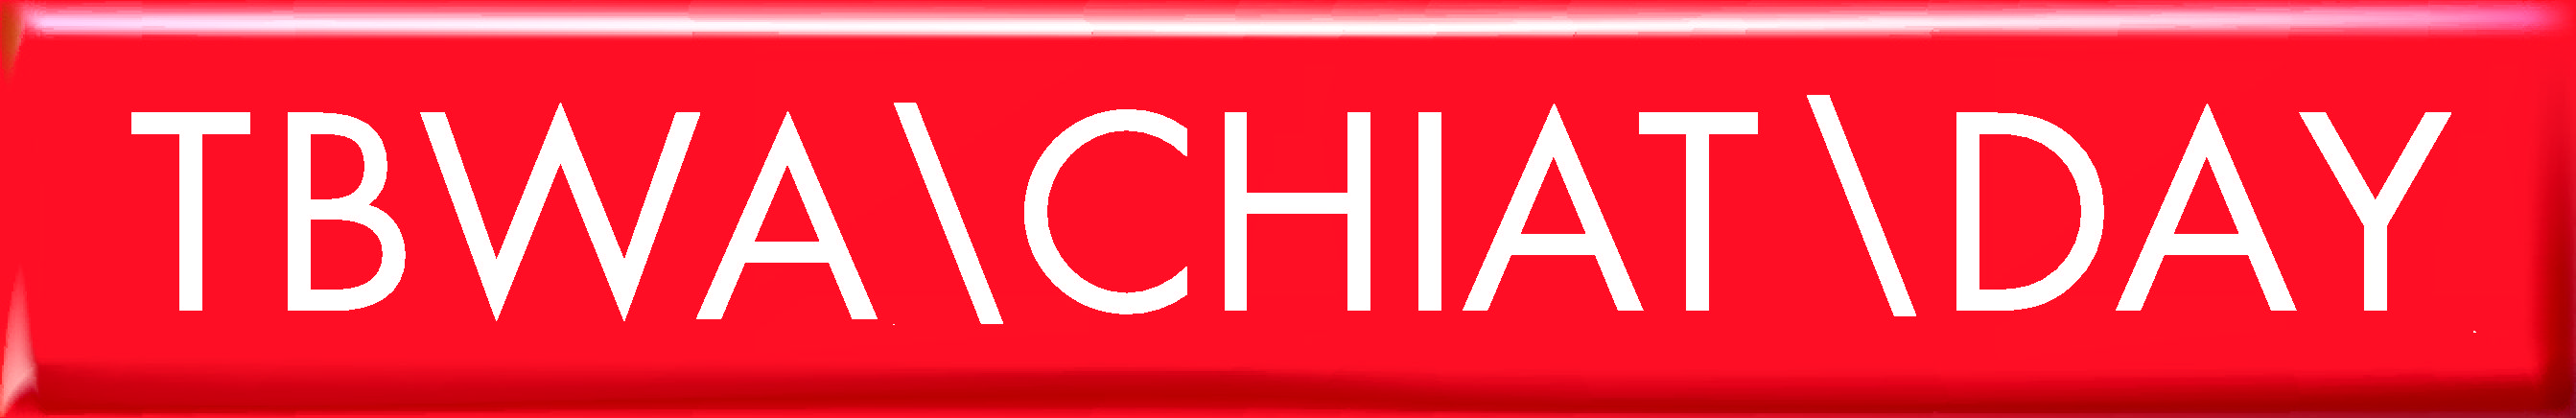 tbwa-chiat-day-logo